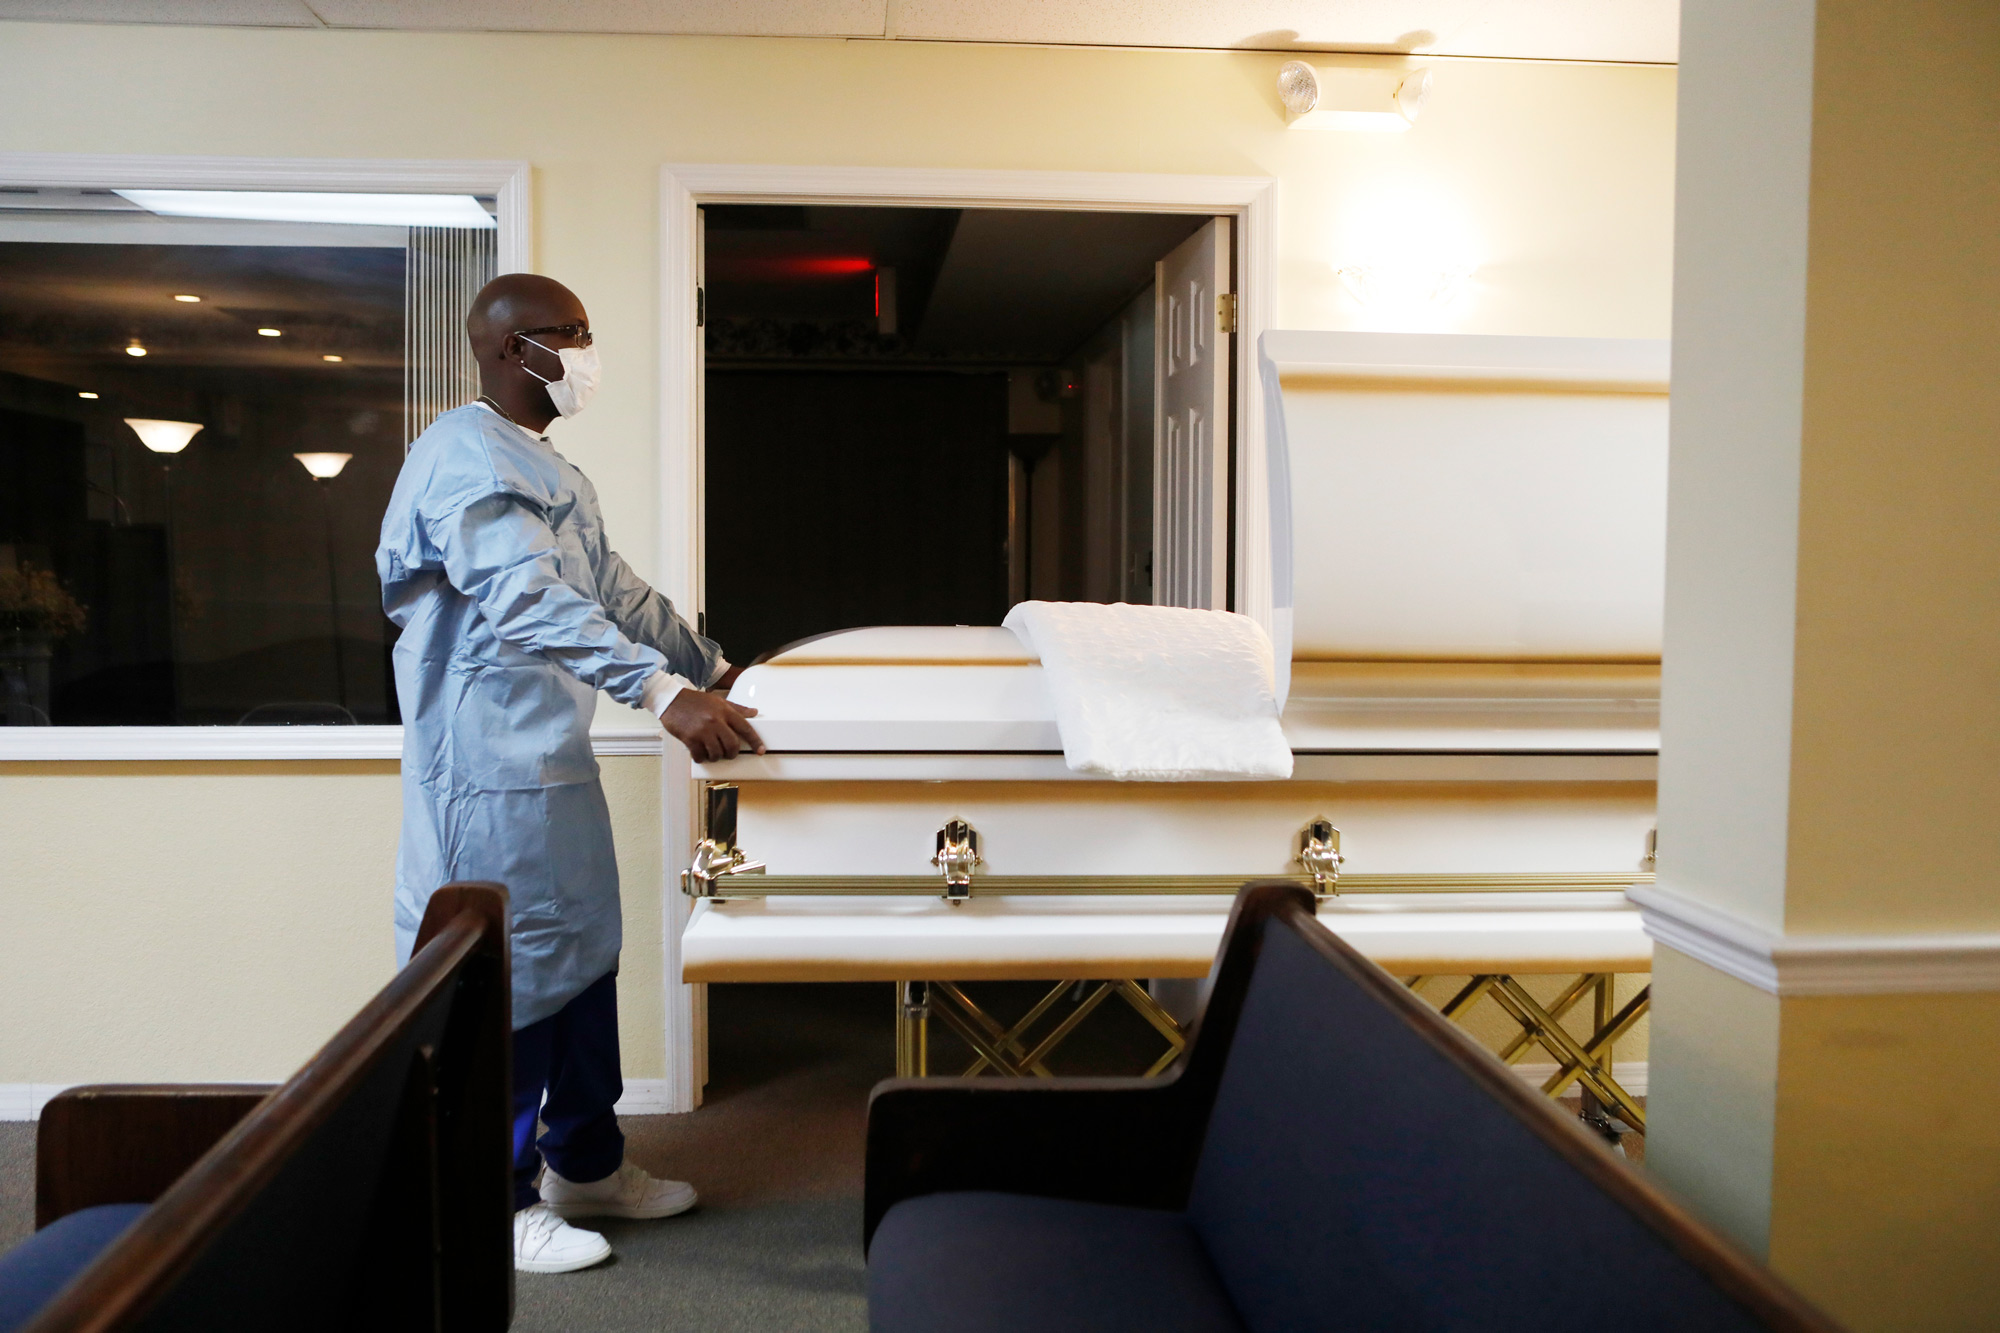 Marlon Warren, a mortician assistant prepares a funeral service for a man who died of COVID-19 at Ray Williams Funeral Home on August 12 in Tampa, Florida.